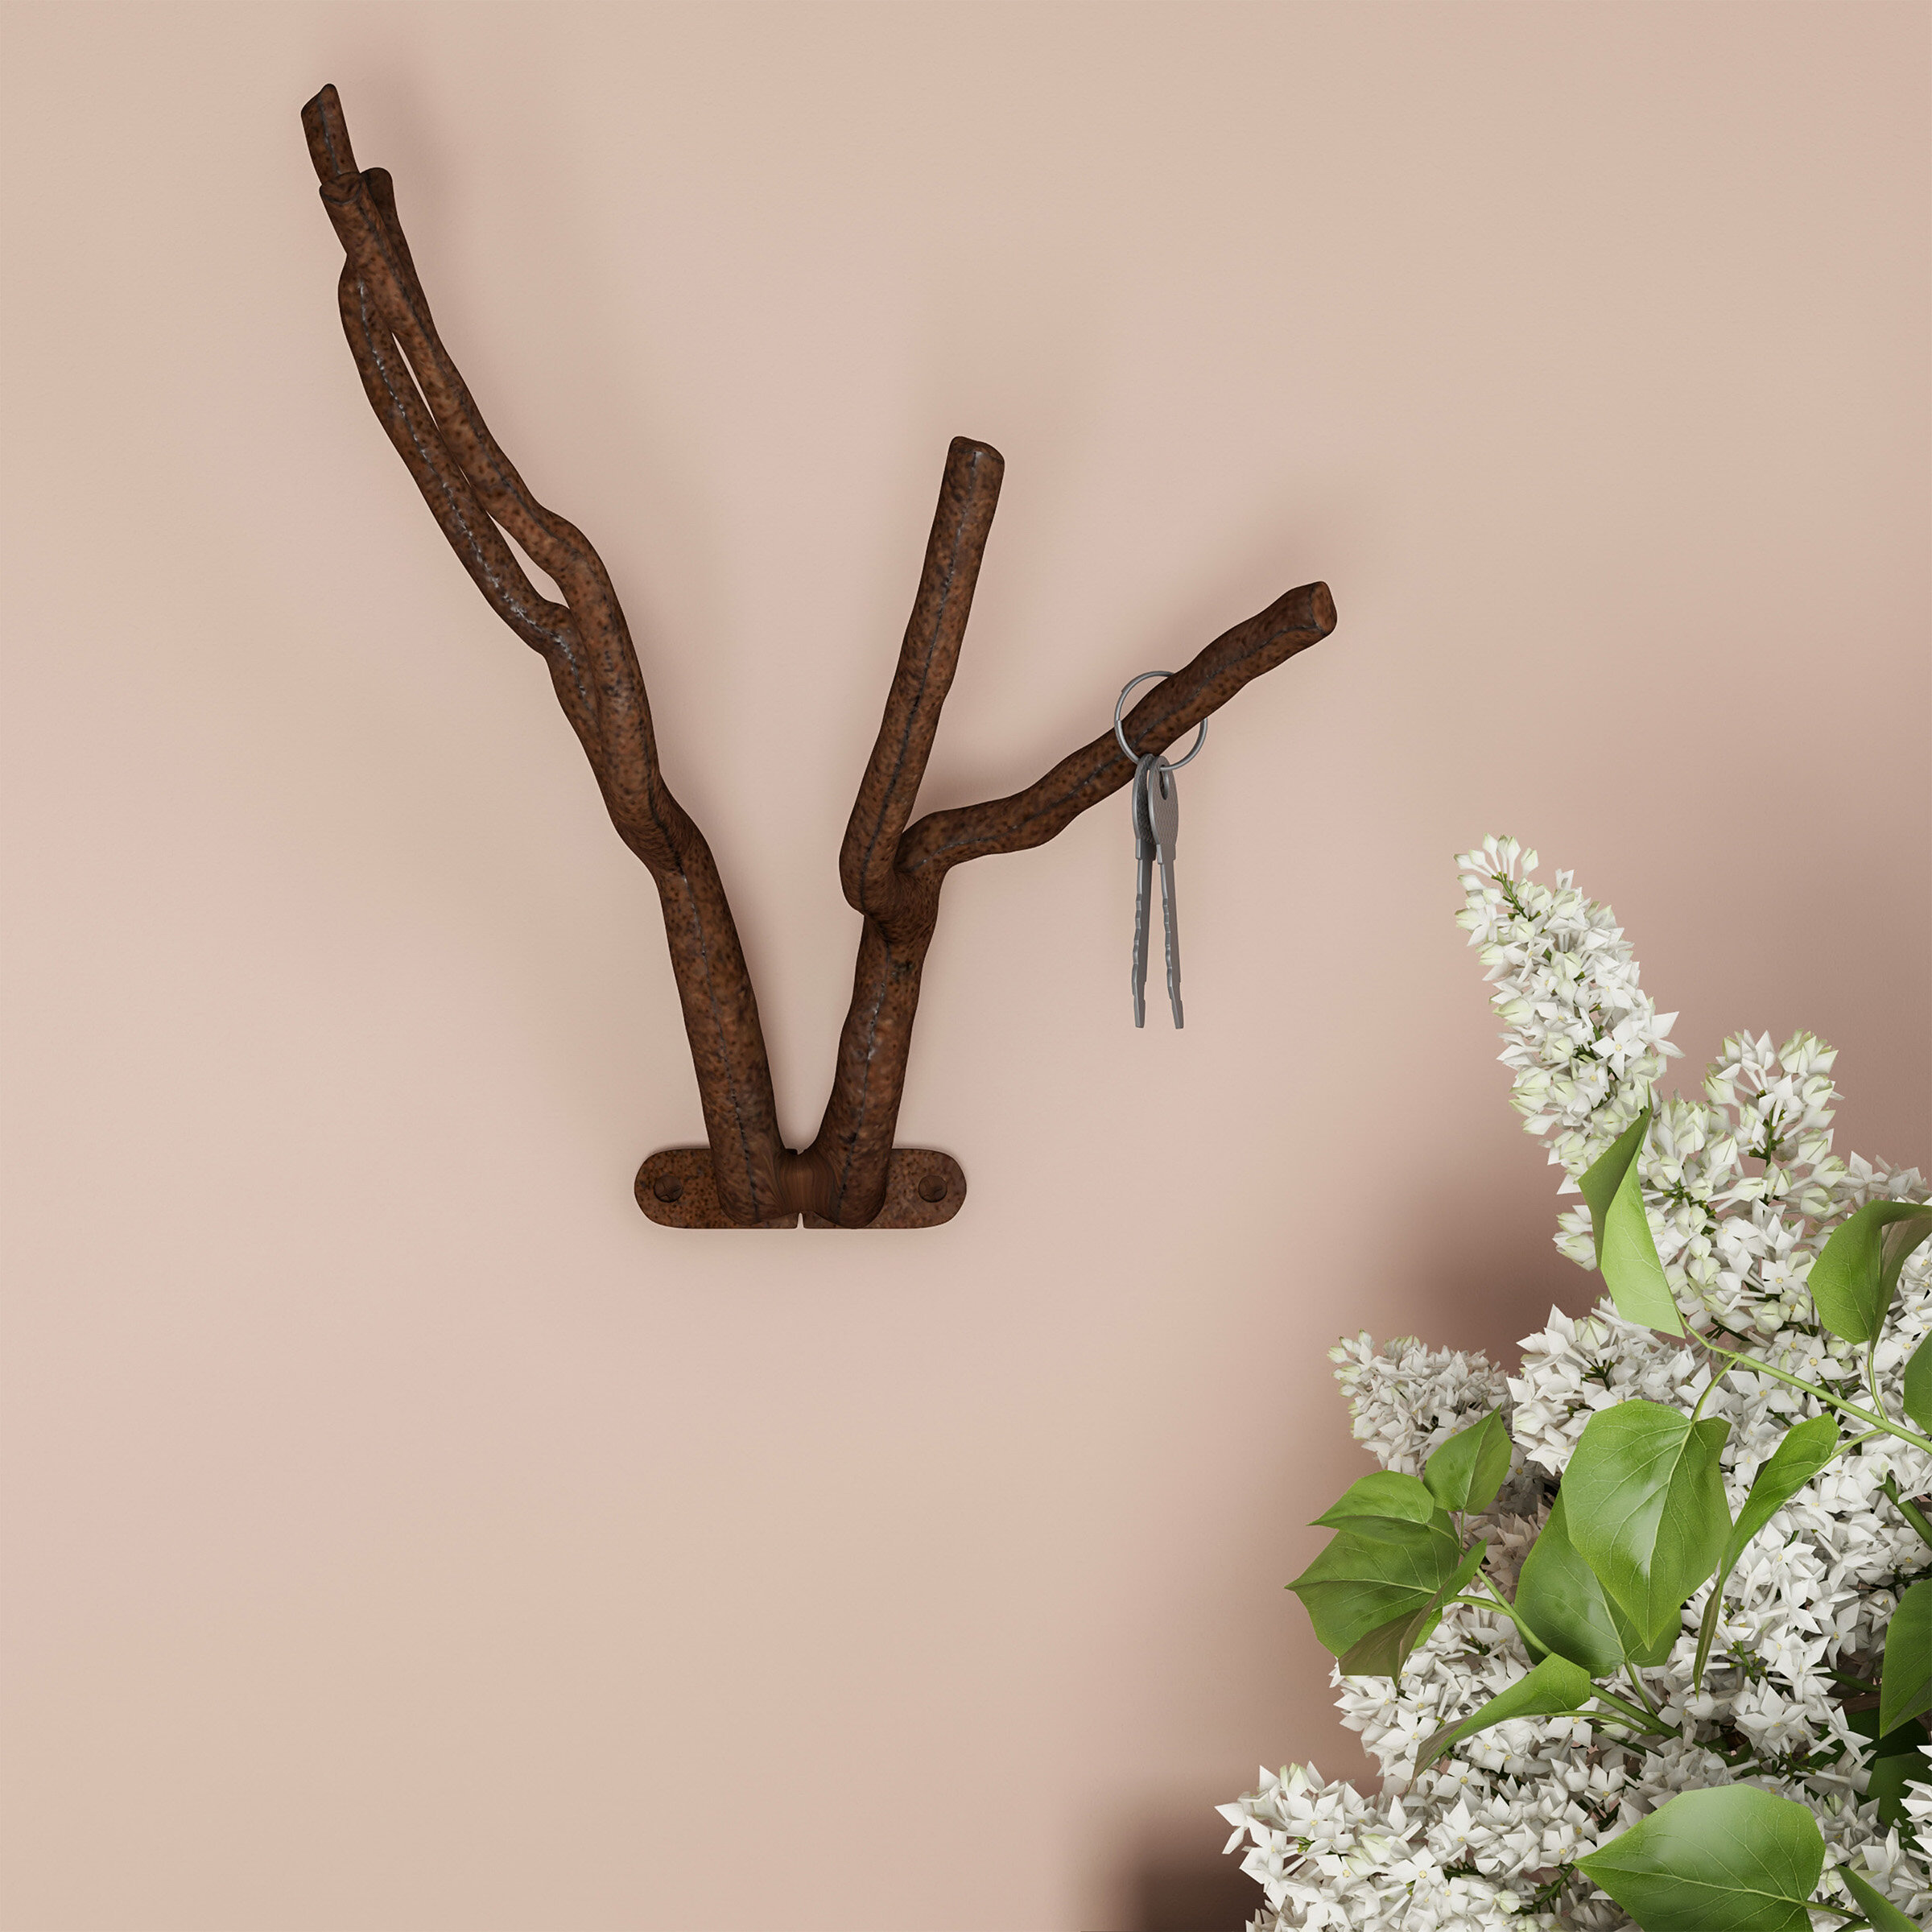 Set of 2 Cast Iron Shelf Brackets New Antique-Style Twig Branch Rustic 7 x 7 Architectural & Garden Antiques